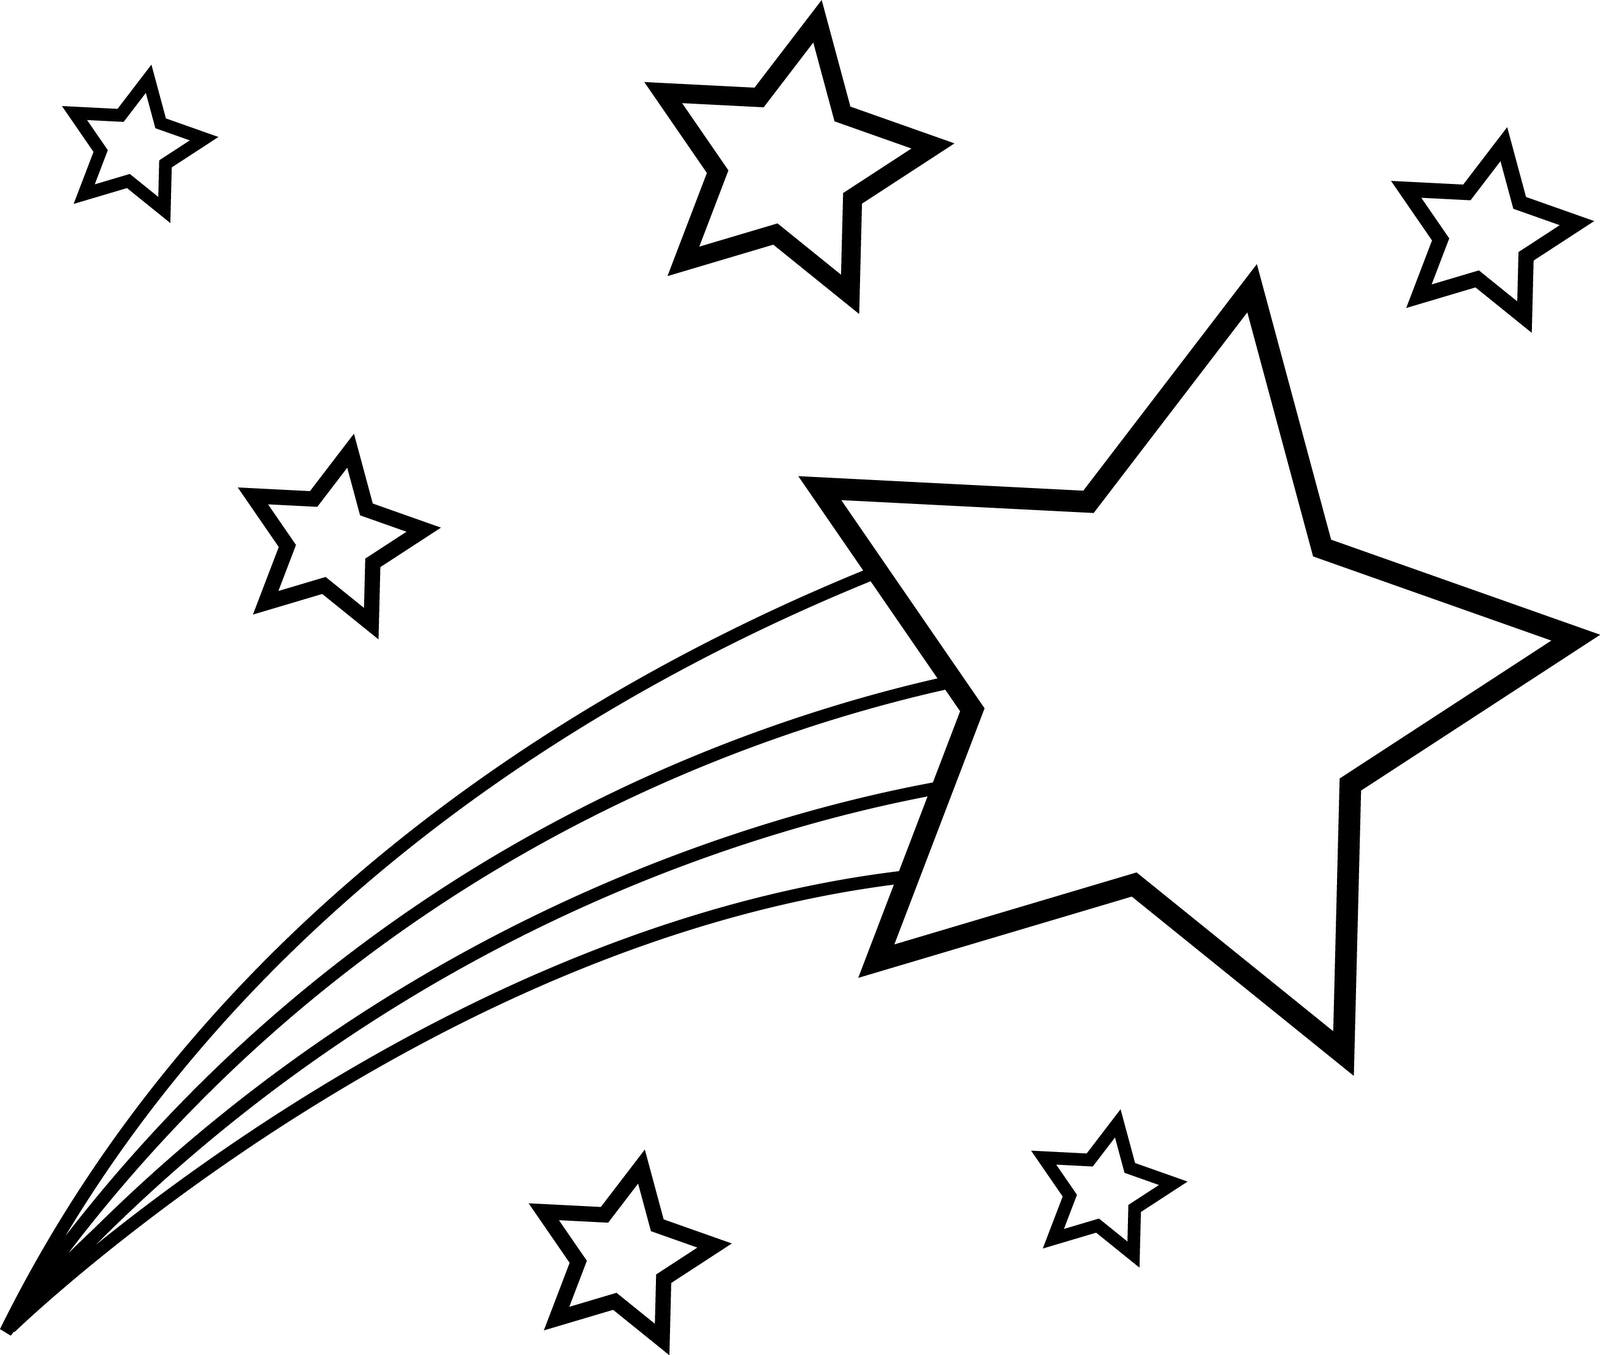 Black and white star clipart png picture transparent library Kindergarten clipart outline - ClipartFest picture transparent library